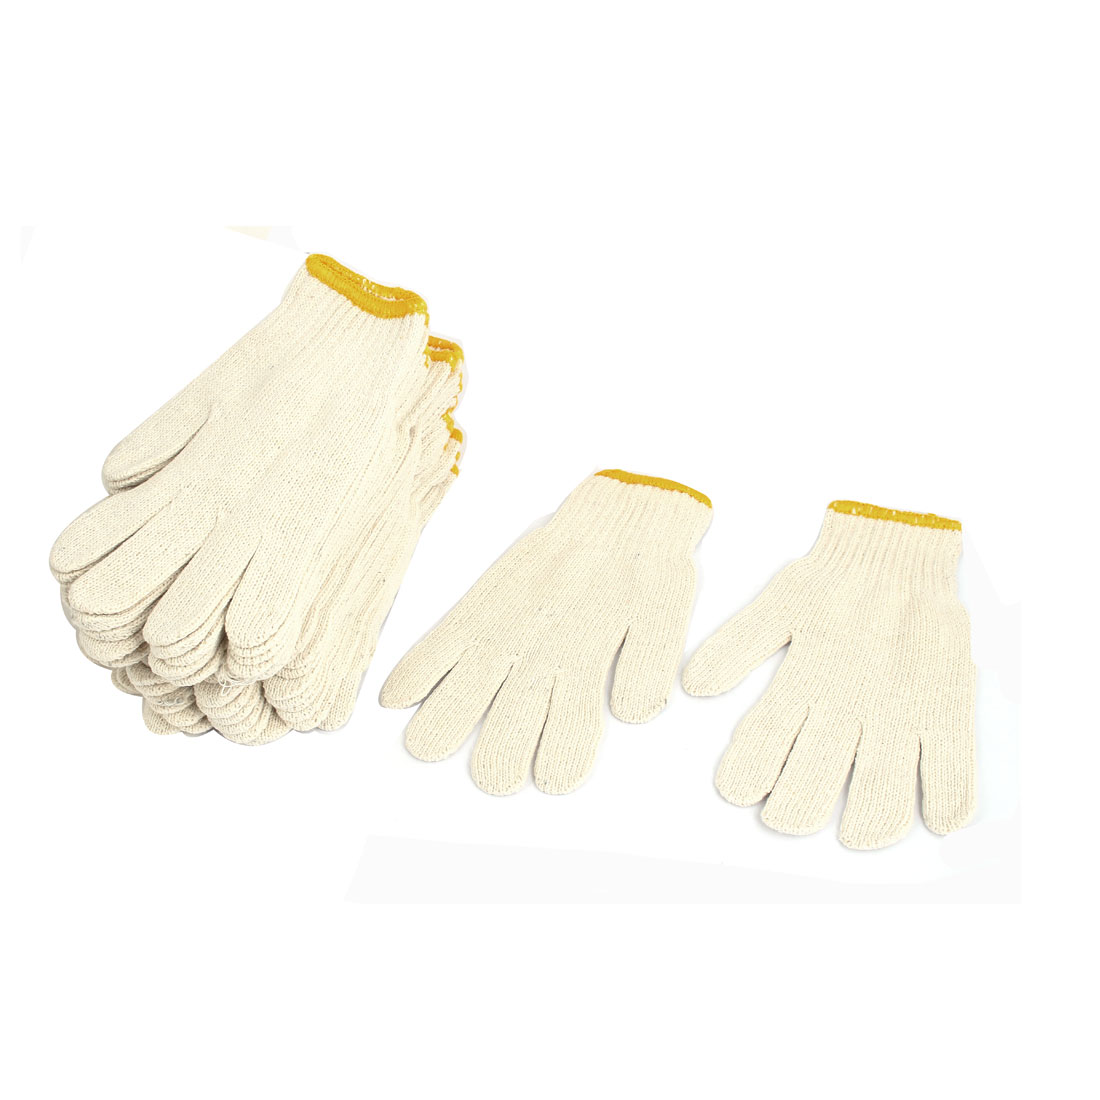 12 Pairs Protective ESD Anti-static Cotton Yarn Working Gloves for Industrial Warehouse